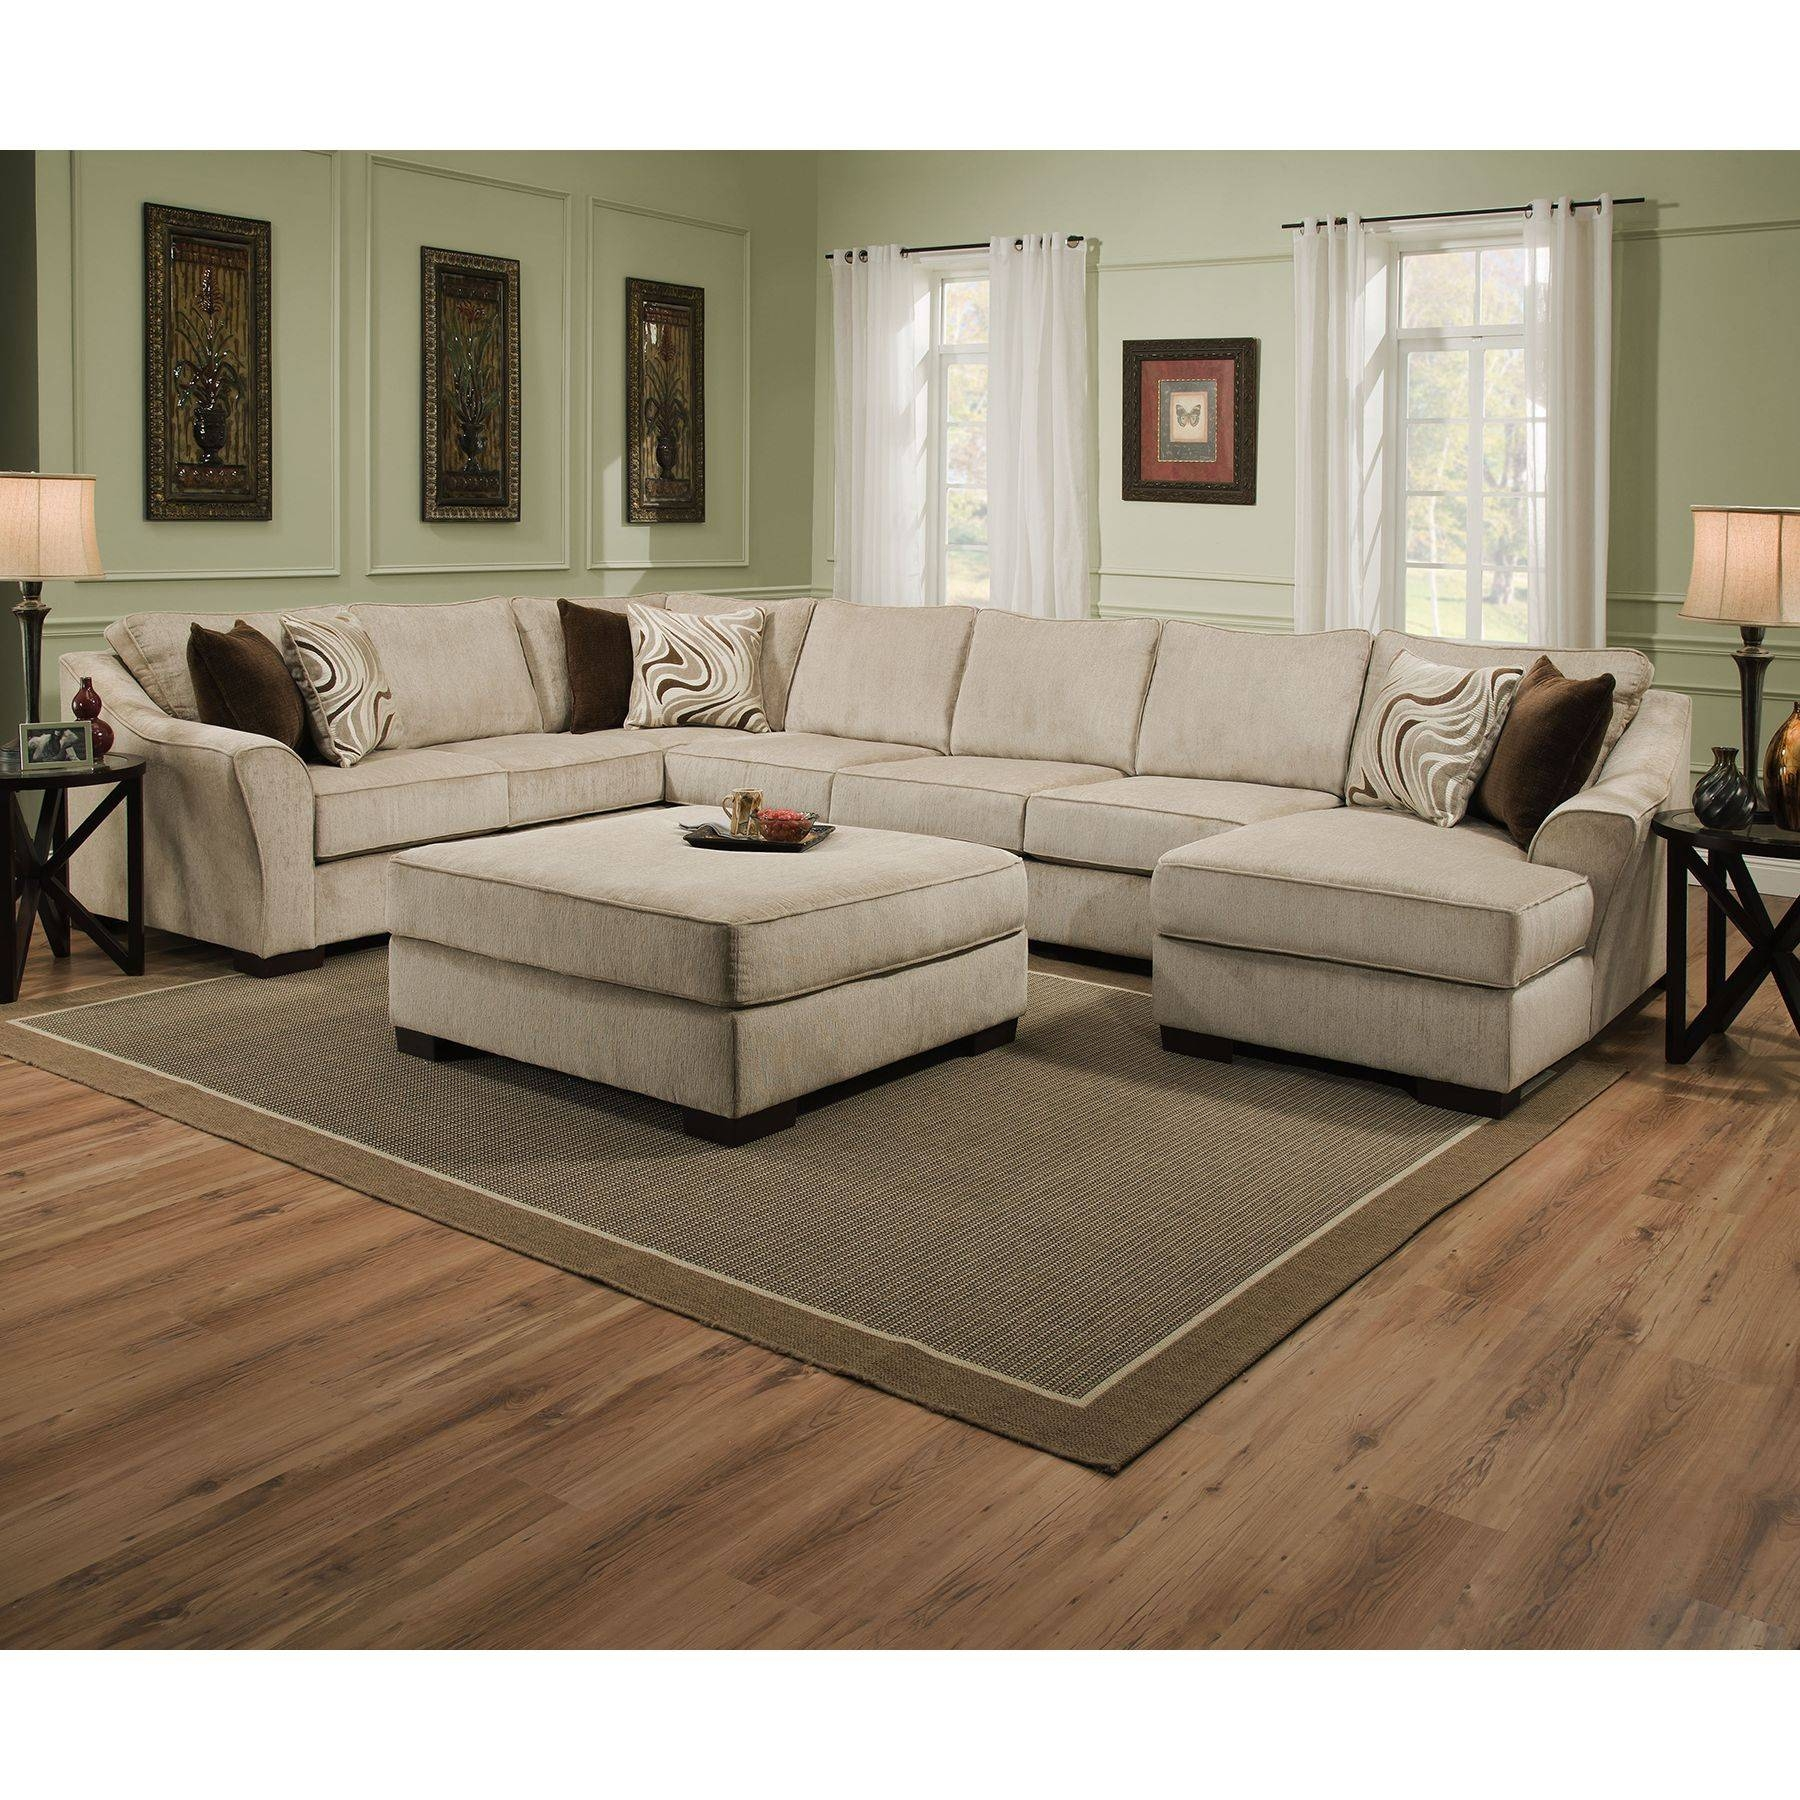 Furniture: Comfy Sectional Sofa | Huge Sectional Sofas | Extra with regard to Large Comfortable Sectional Sofas (Image 10 of 25)